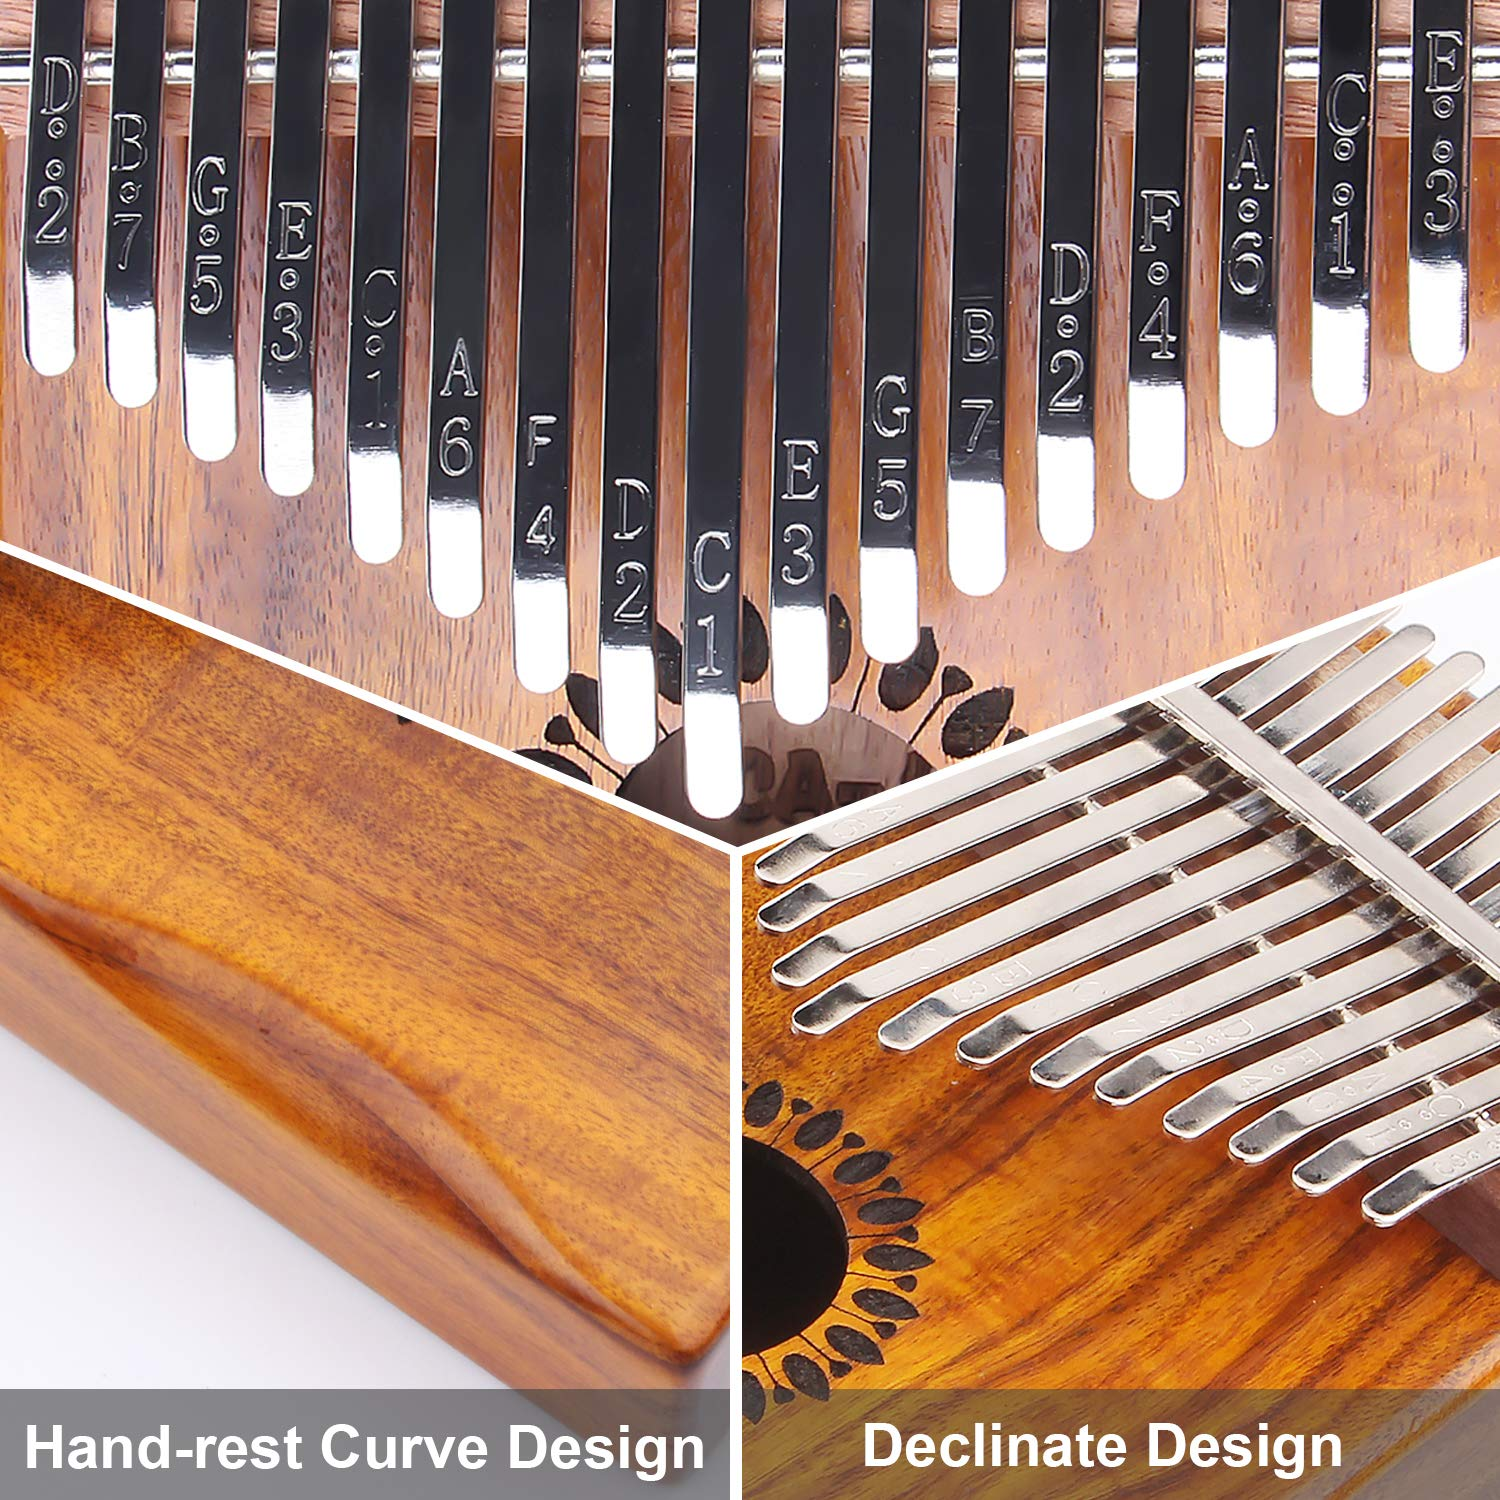 Kalimba Thumb Piano 17 Keys, Portable Mbira Finger Piano Gifts for Kids and Adults Beginners by Newlam (Image #3)